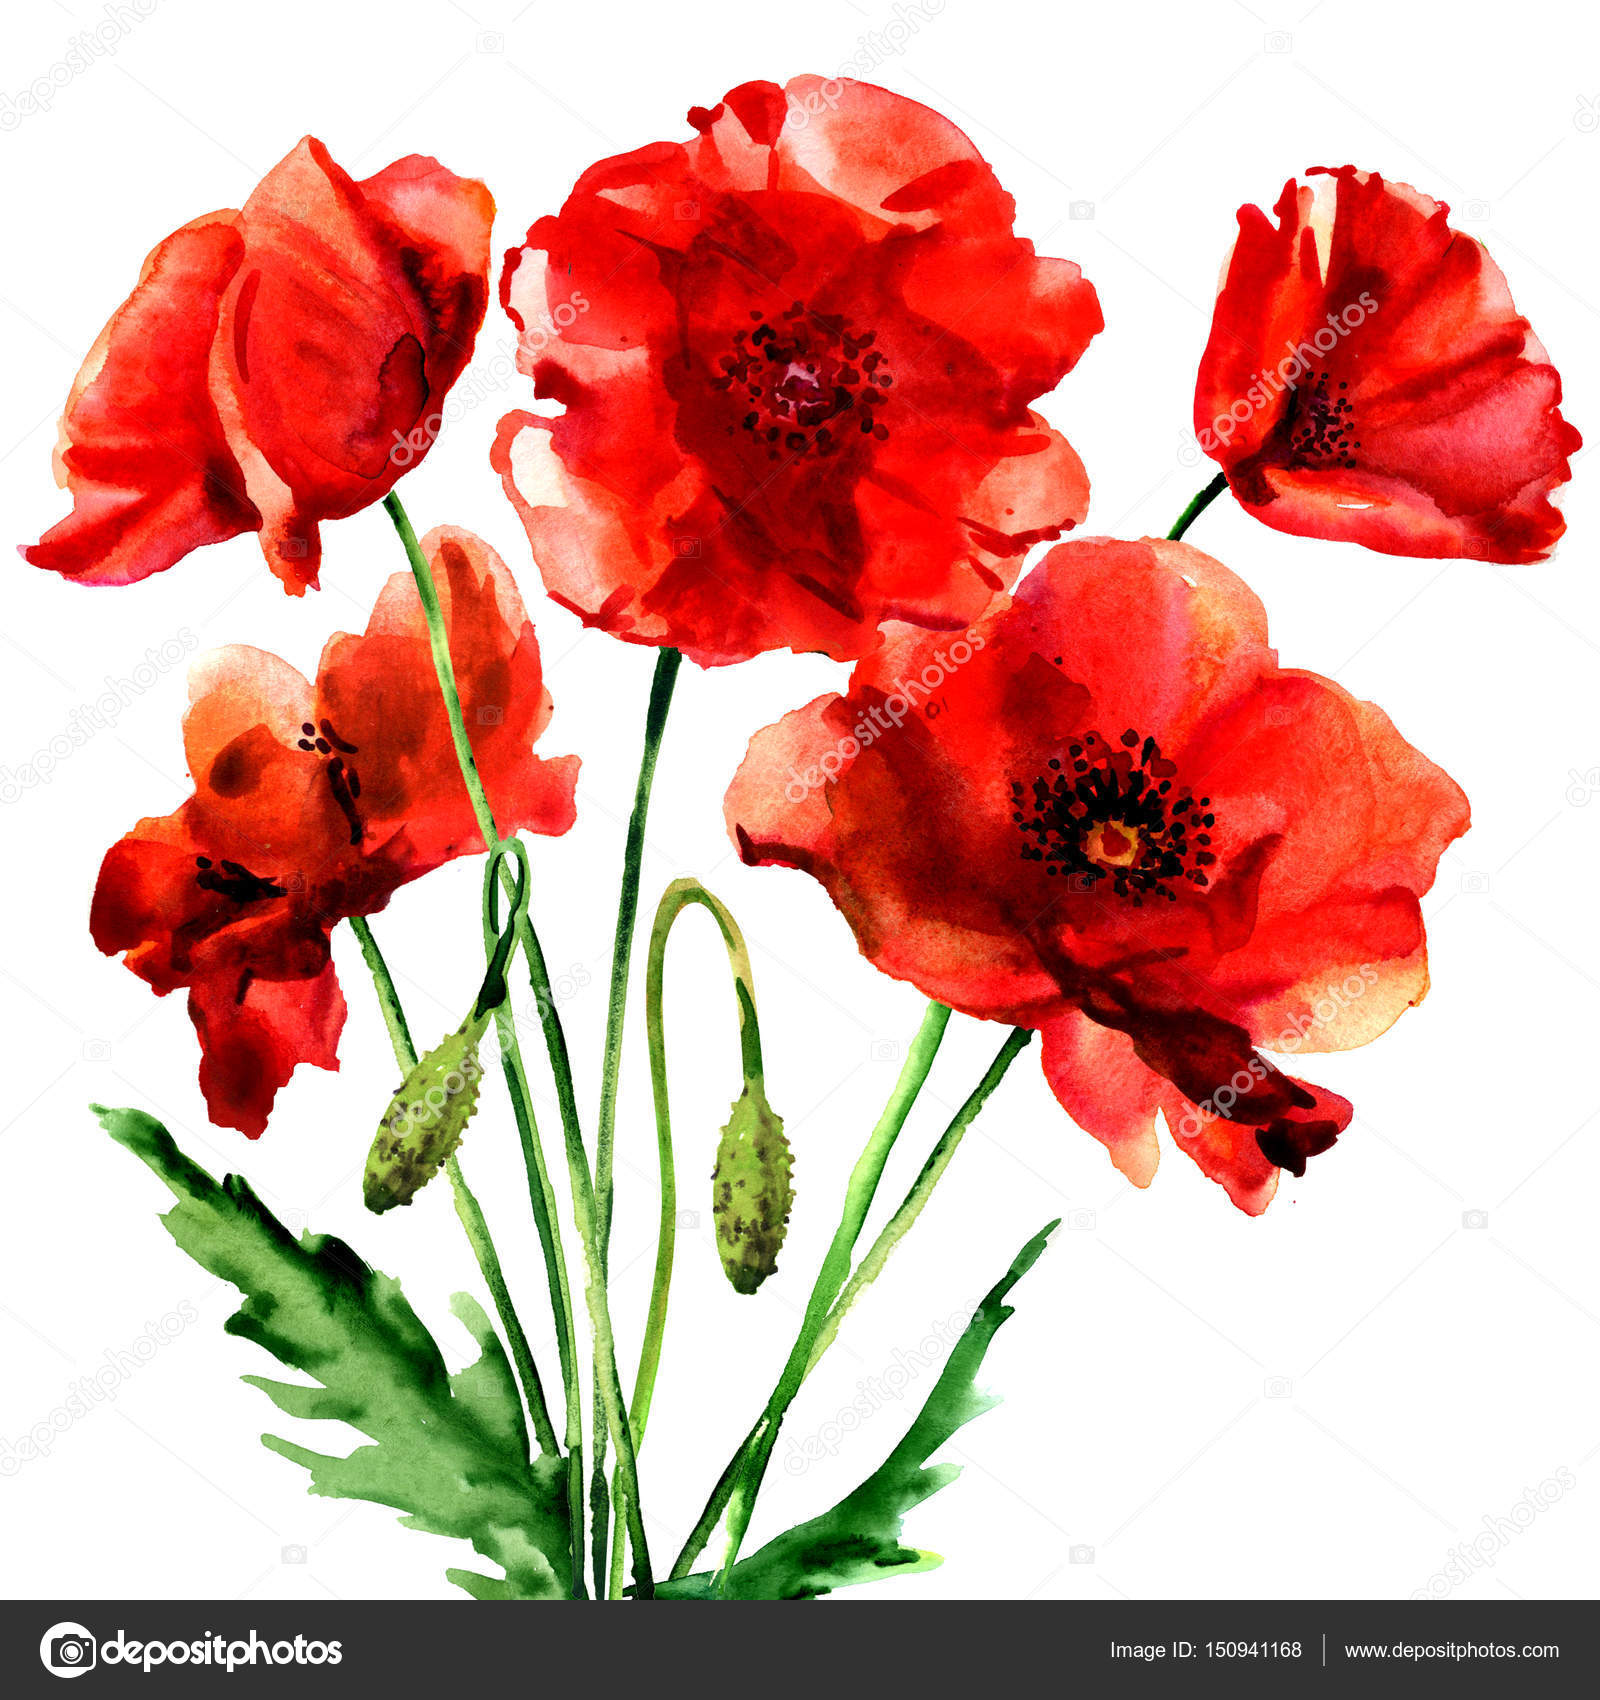 Romantic Summer Red Poppy Flower Isolated Watercolor Illustration